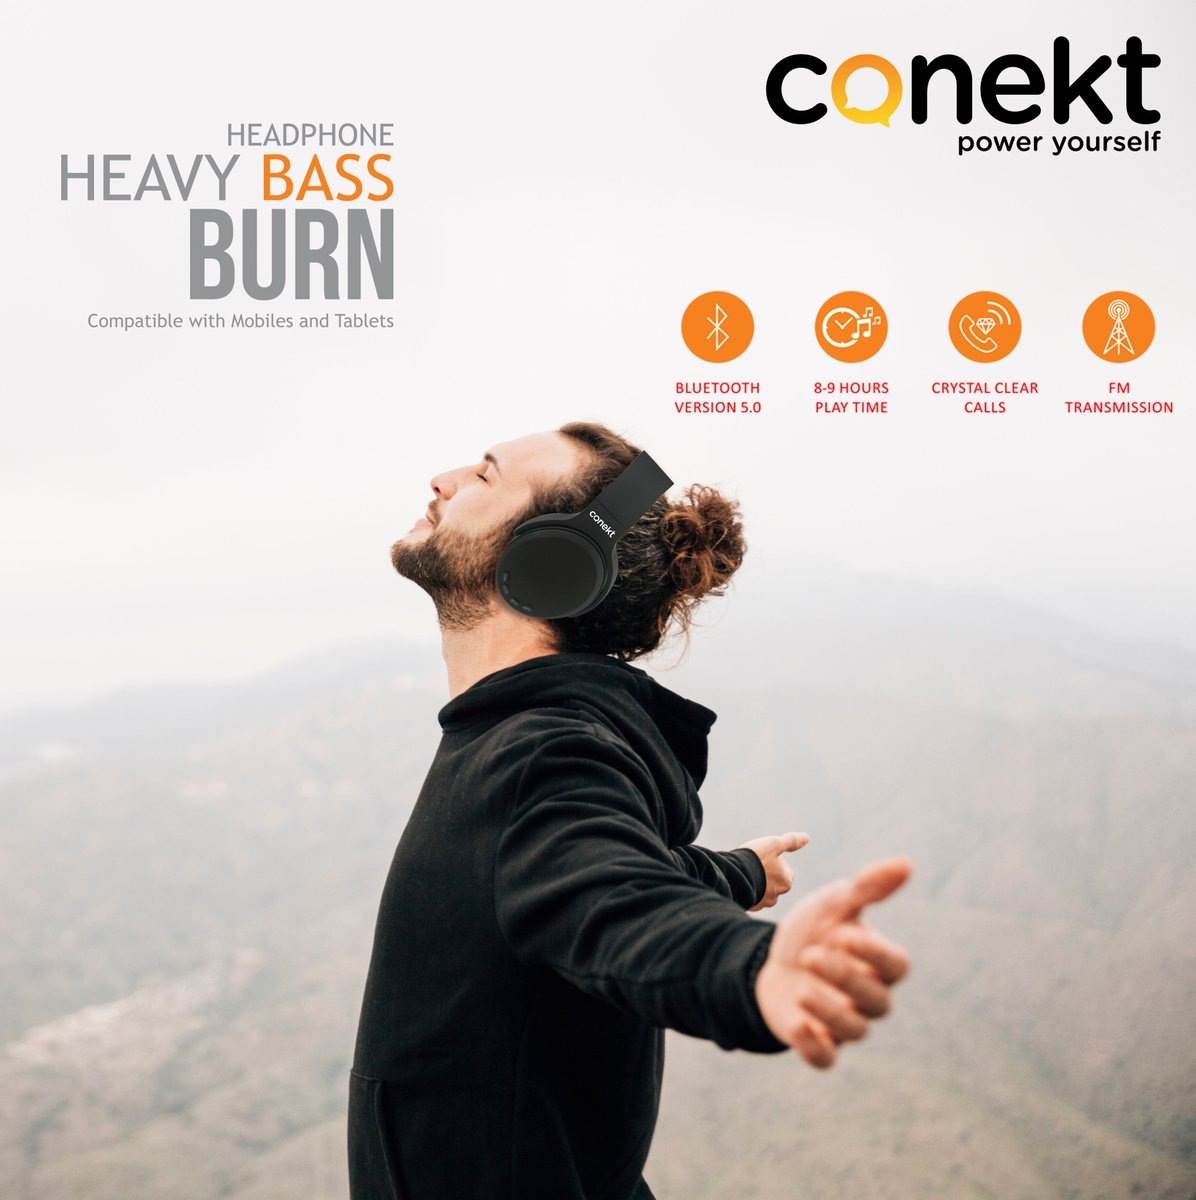 Forgot the #world when be in your #Music with #Heavybass Headphone Burn SeriesExplore Our more Products http://www.conekt.in 👈👈👈For Buying Online https://tinyurl.com/y4qlnwyu 👈👈👈#Rohitsharma #Hitman #CWC19 #Worldcup19 #MobileGadgets #Conekt #Poweryourself